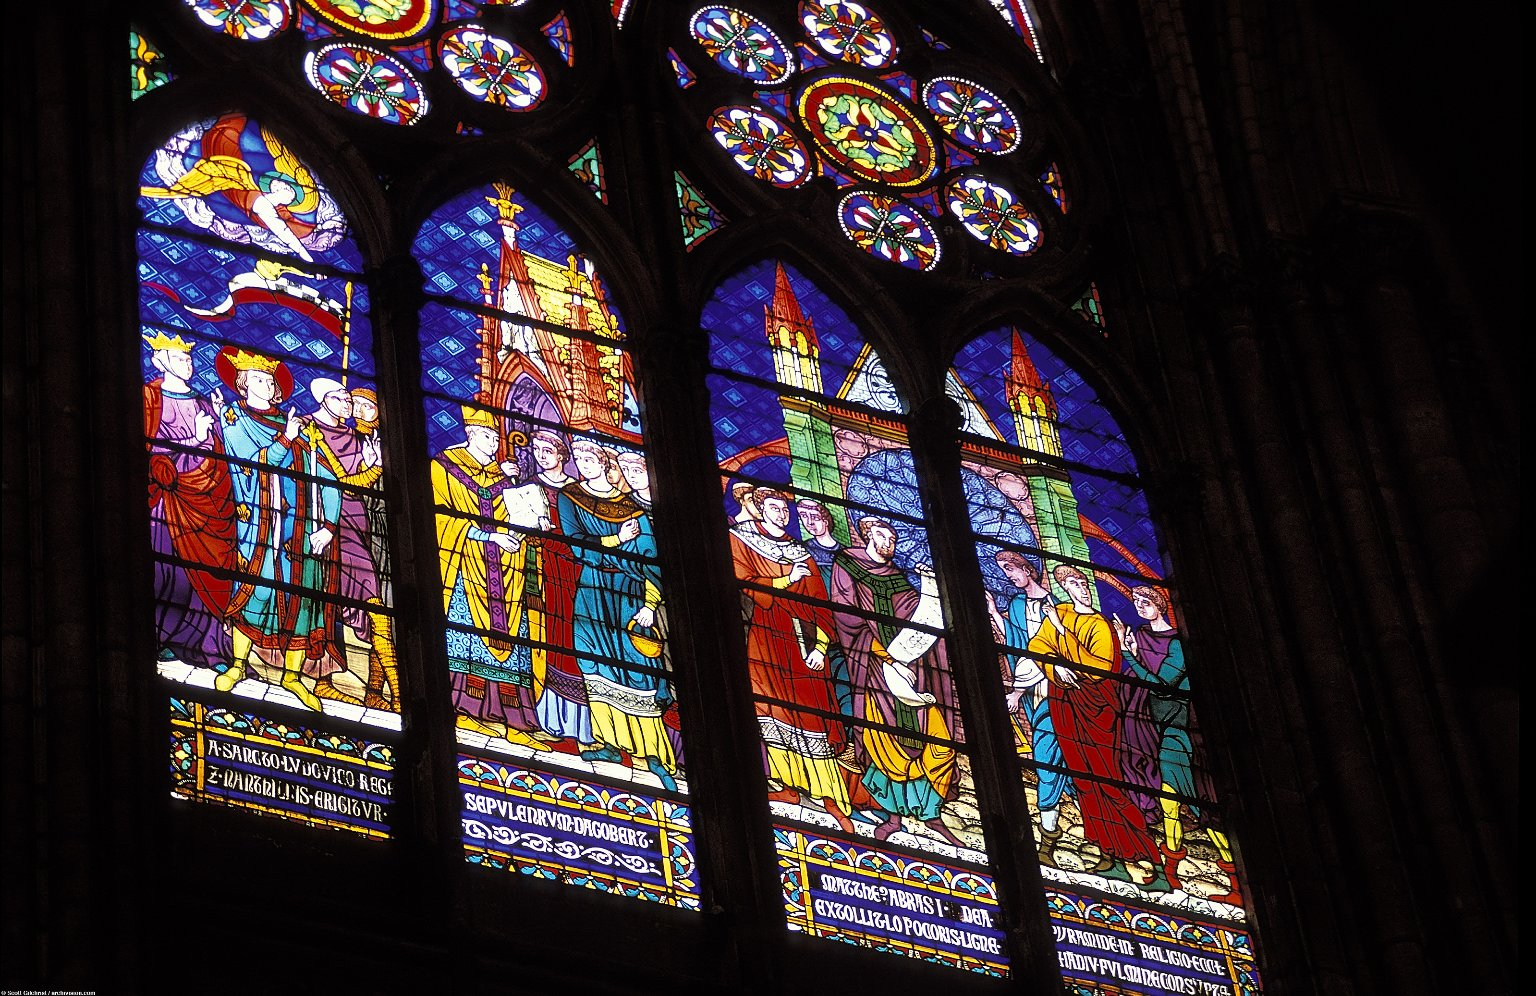 Saint-Denis: Stained Glass in Chancel and Rose Windows